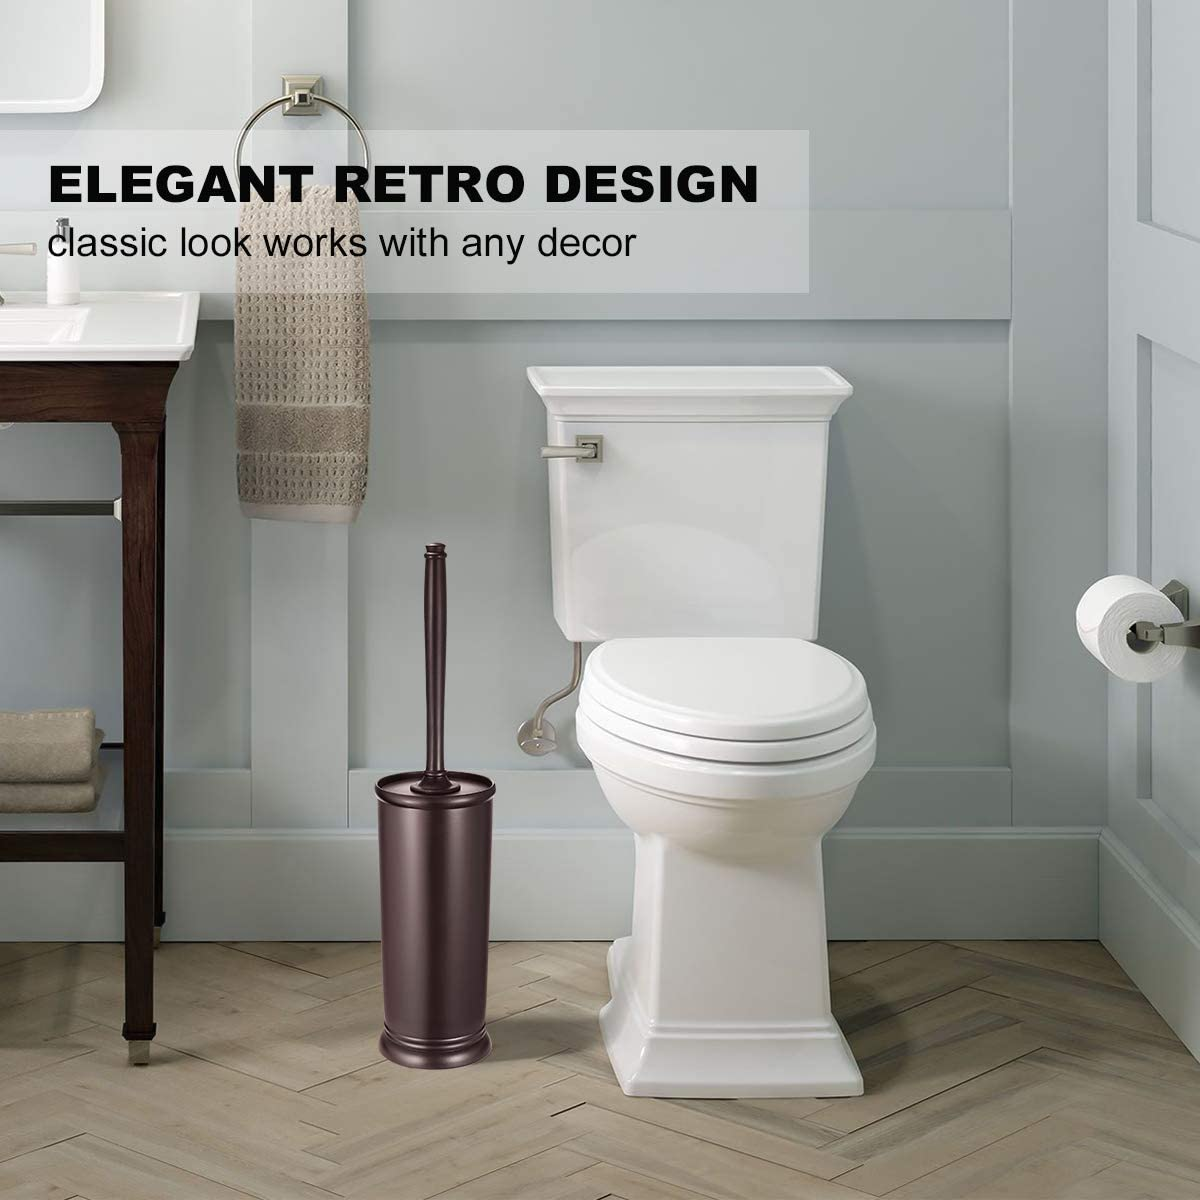 Toilet Brush and Holder 2 Pack 【2020 Upgraded】 Deep Cleaning Toilet Bowl Brush Set -- Brown